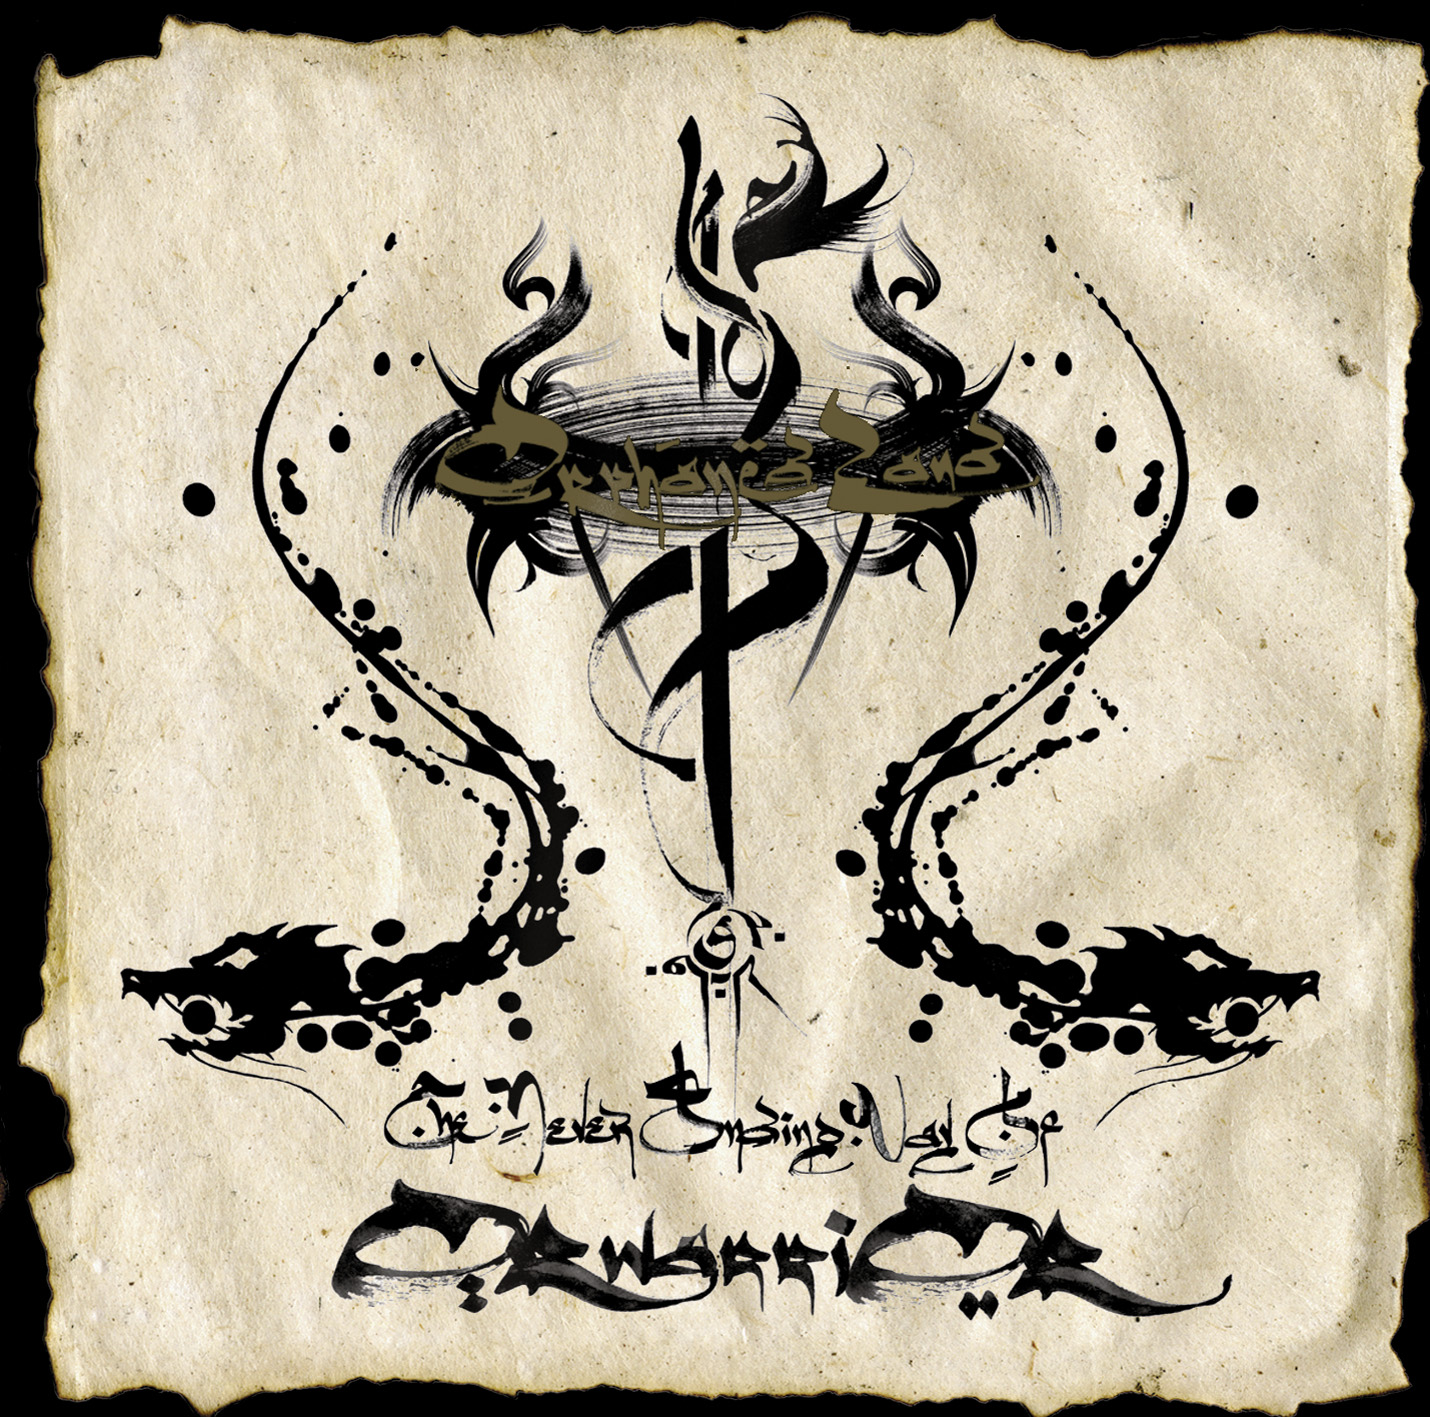 Orphaned Land Post a New Track on Myspace and get Confirmed for Wacken!